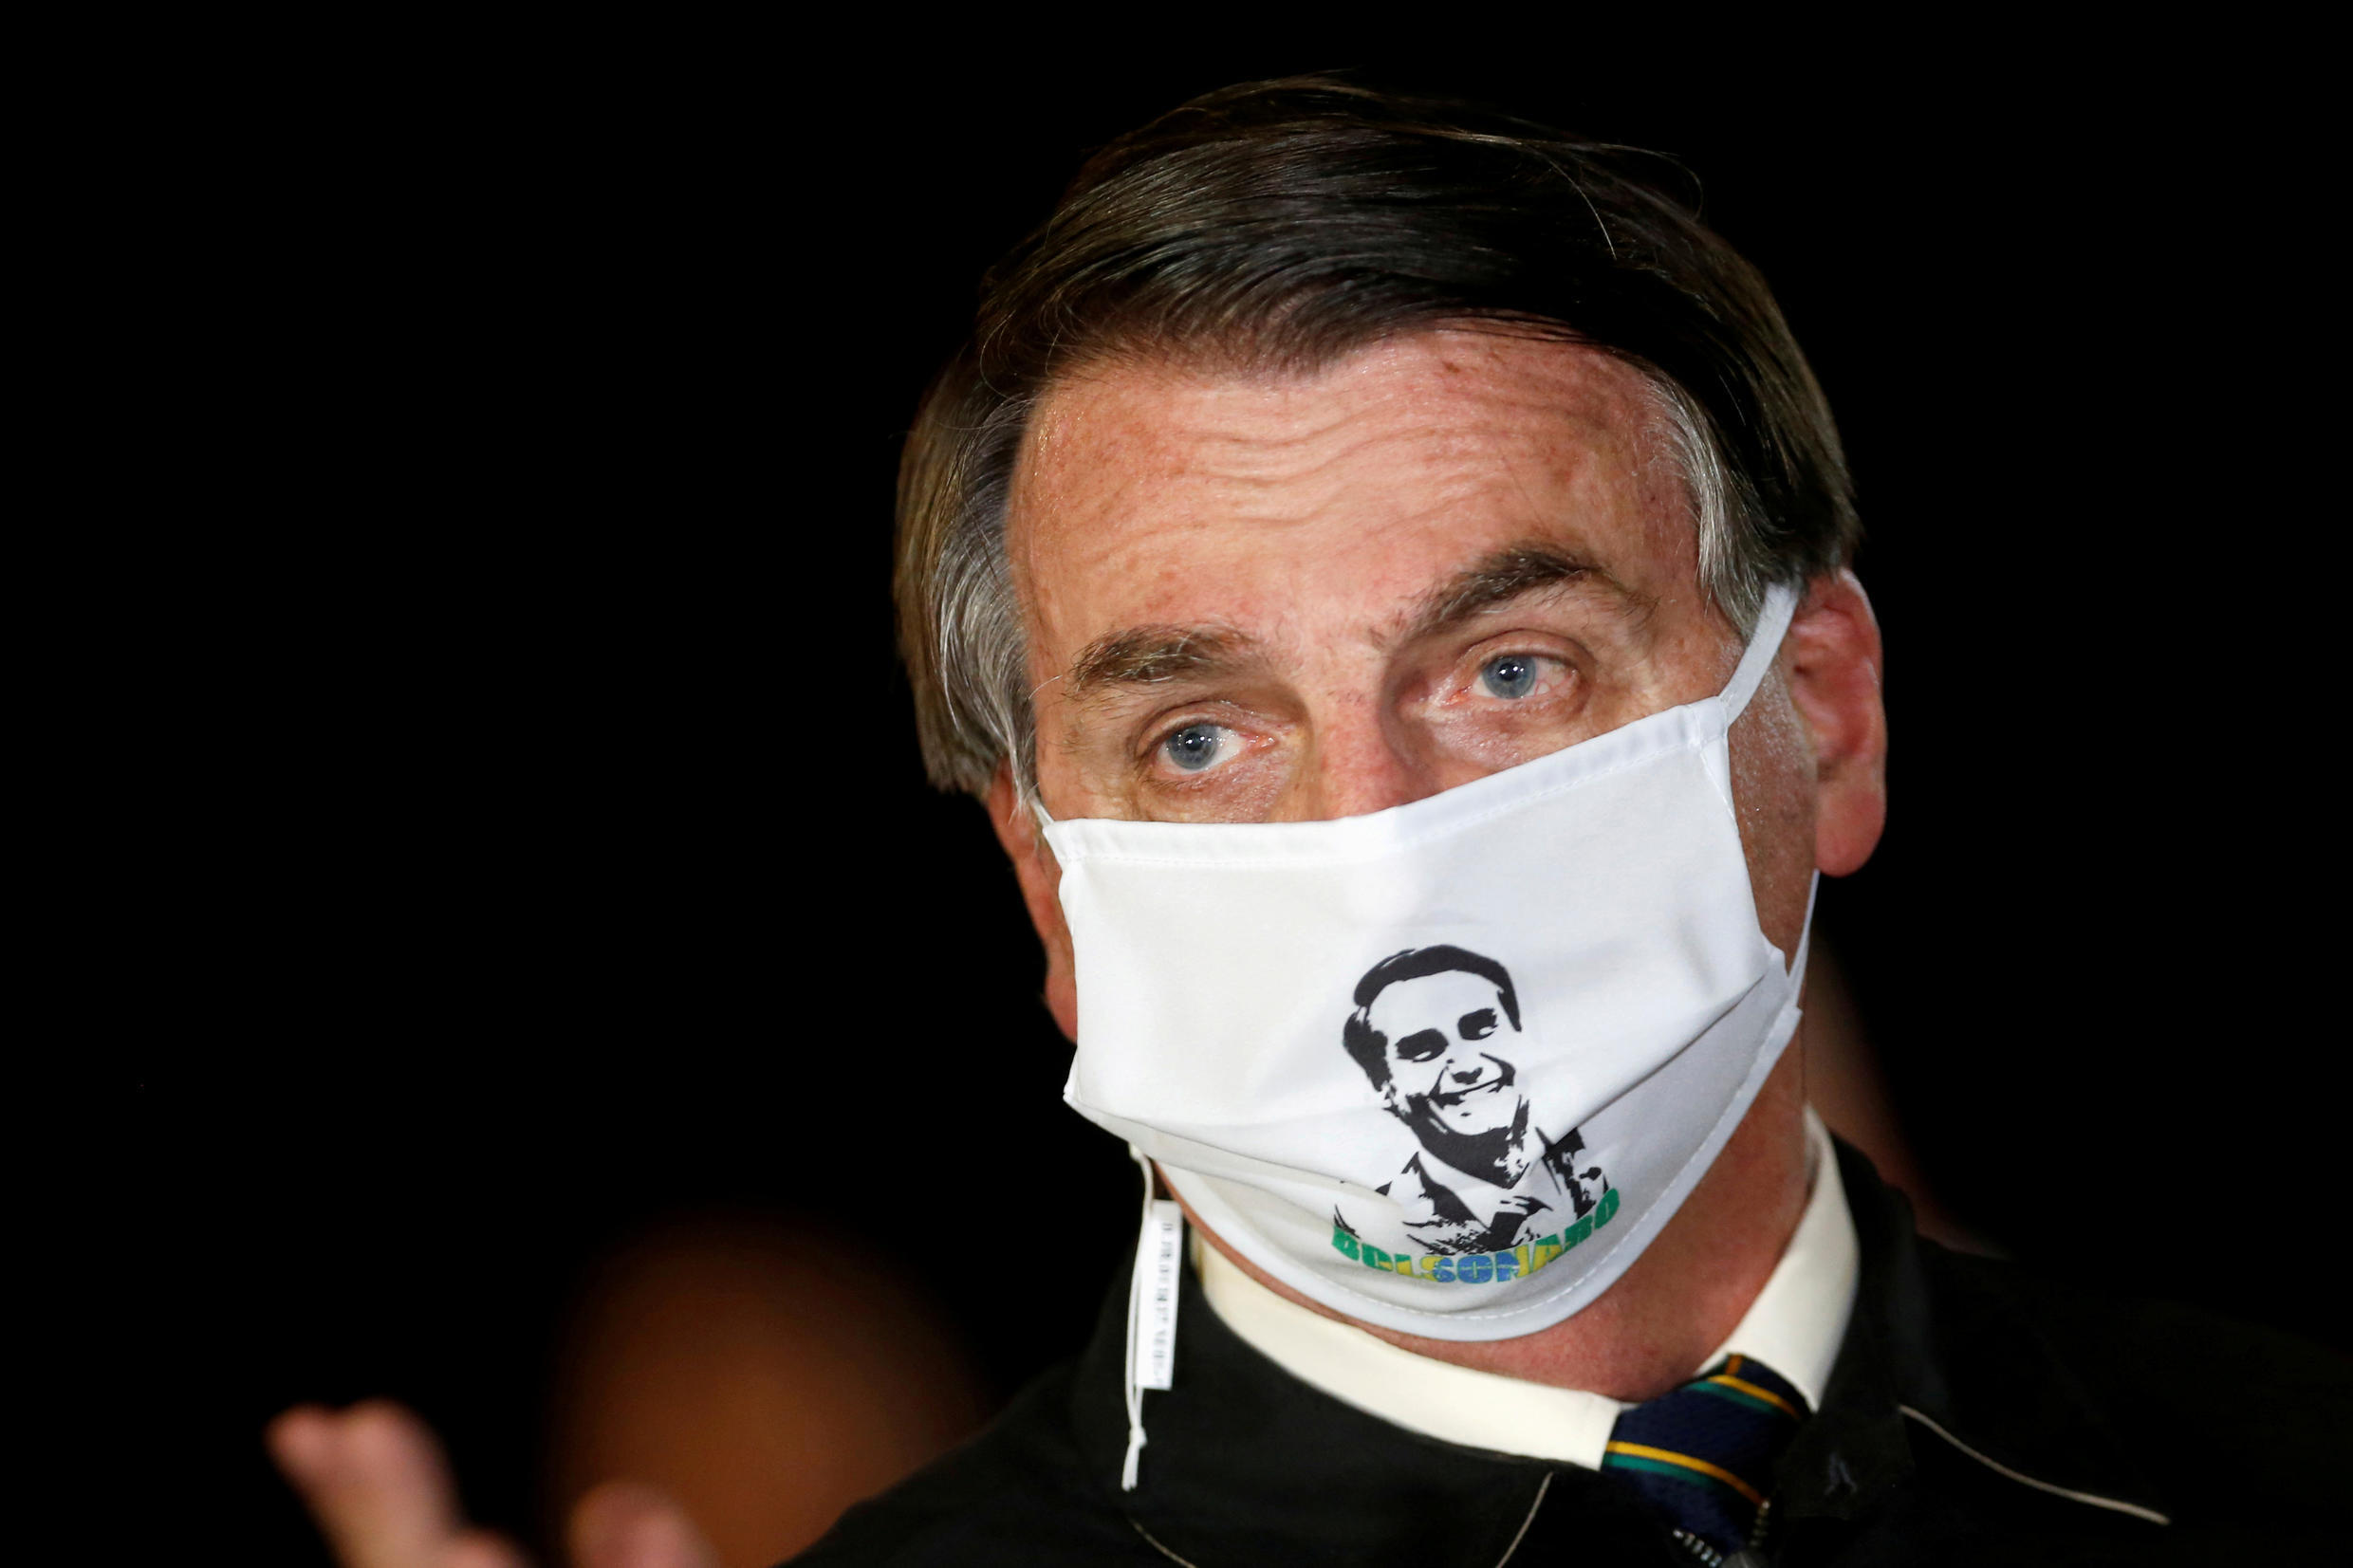 Brazil's President Jair Bolsonaro speaks with journalists while wearing a protective face mask as he arrives at Alvorada Palace, amid the coronavirus disease (COVID-19) outbreak, in Brasilia, Brazil, May 22, 2020.